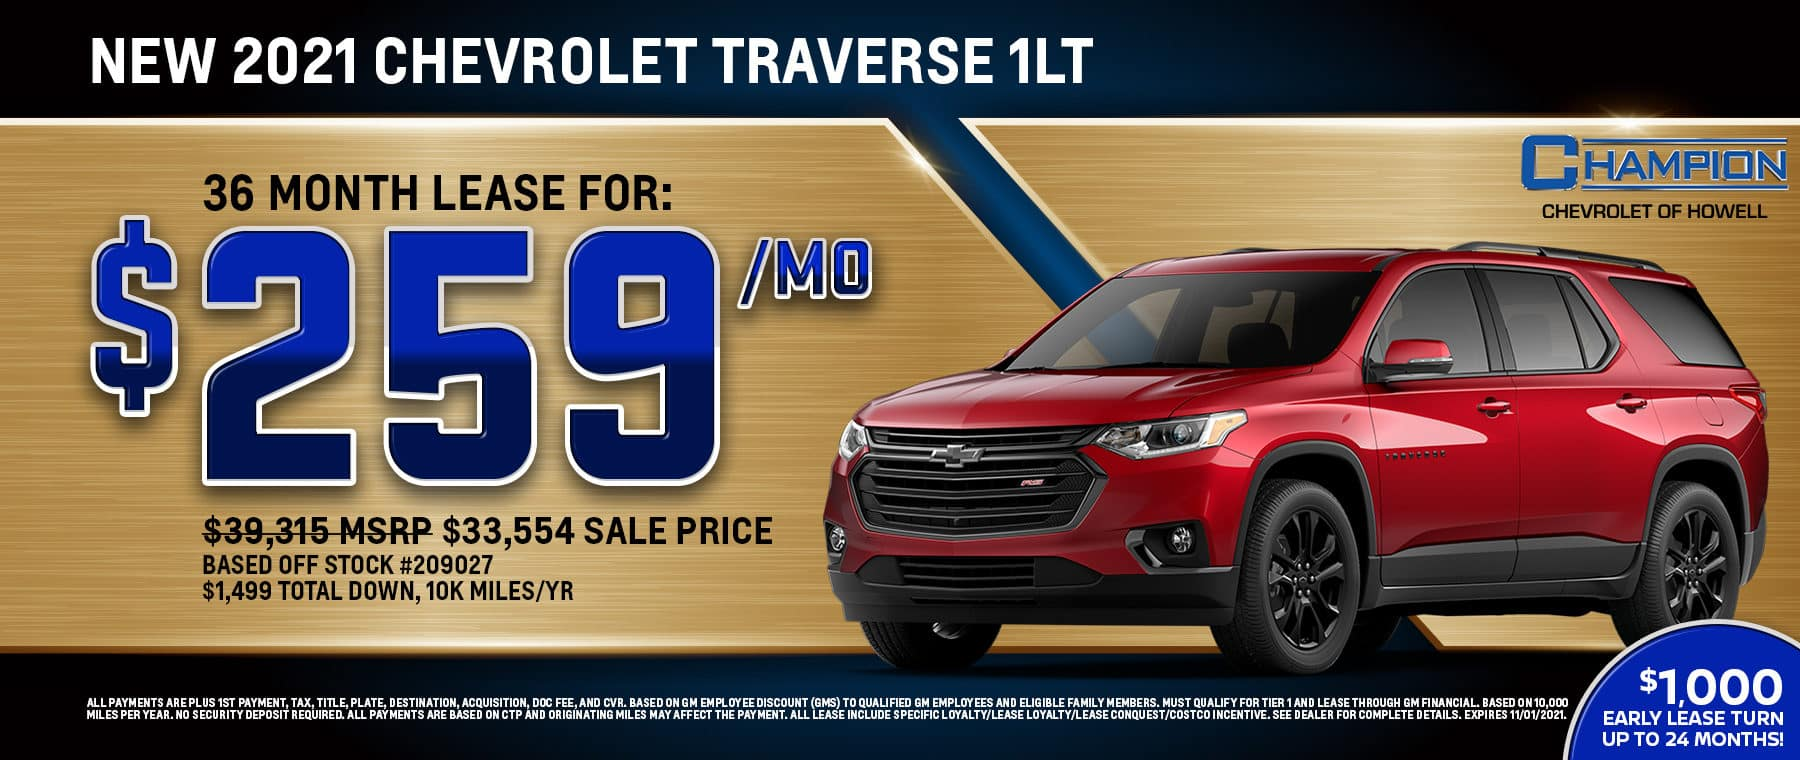 10_21_Champion_Howell_Chevy_1800x760_2021_Traverse_1LT_web_banner